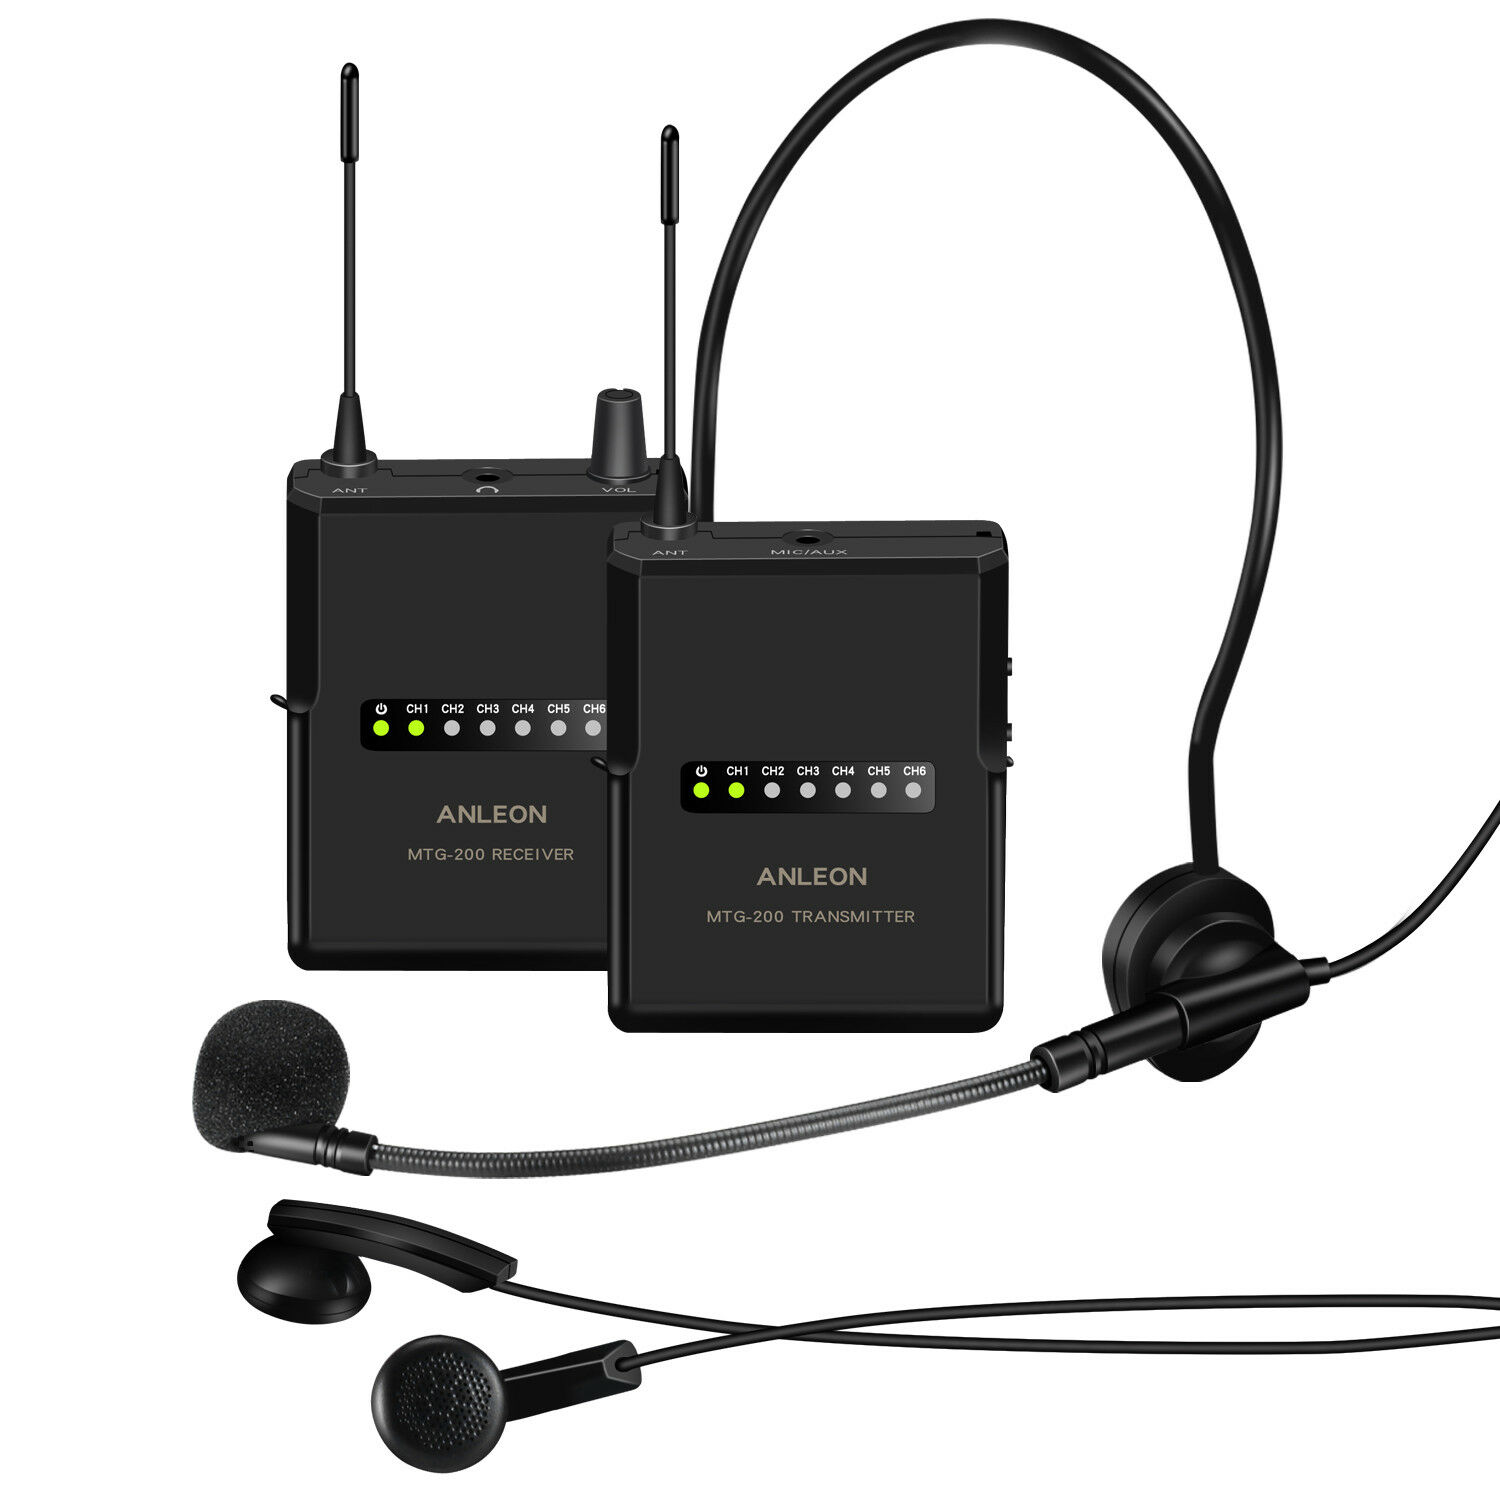 ANLEON MTG200 Wireless Tour Guide System Translation System Headsets